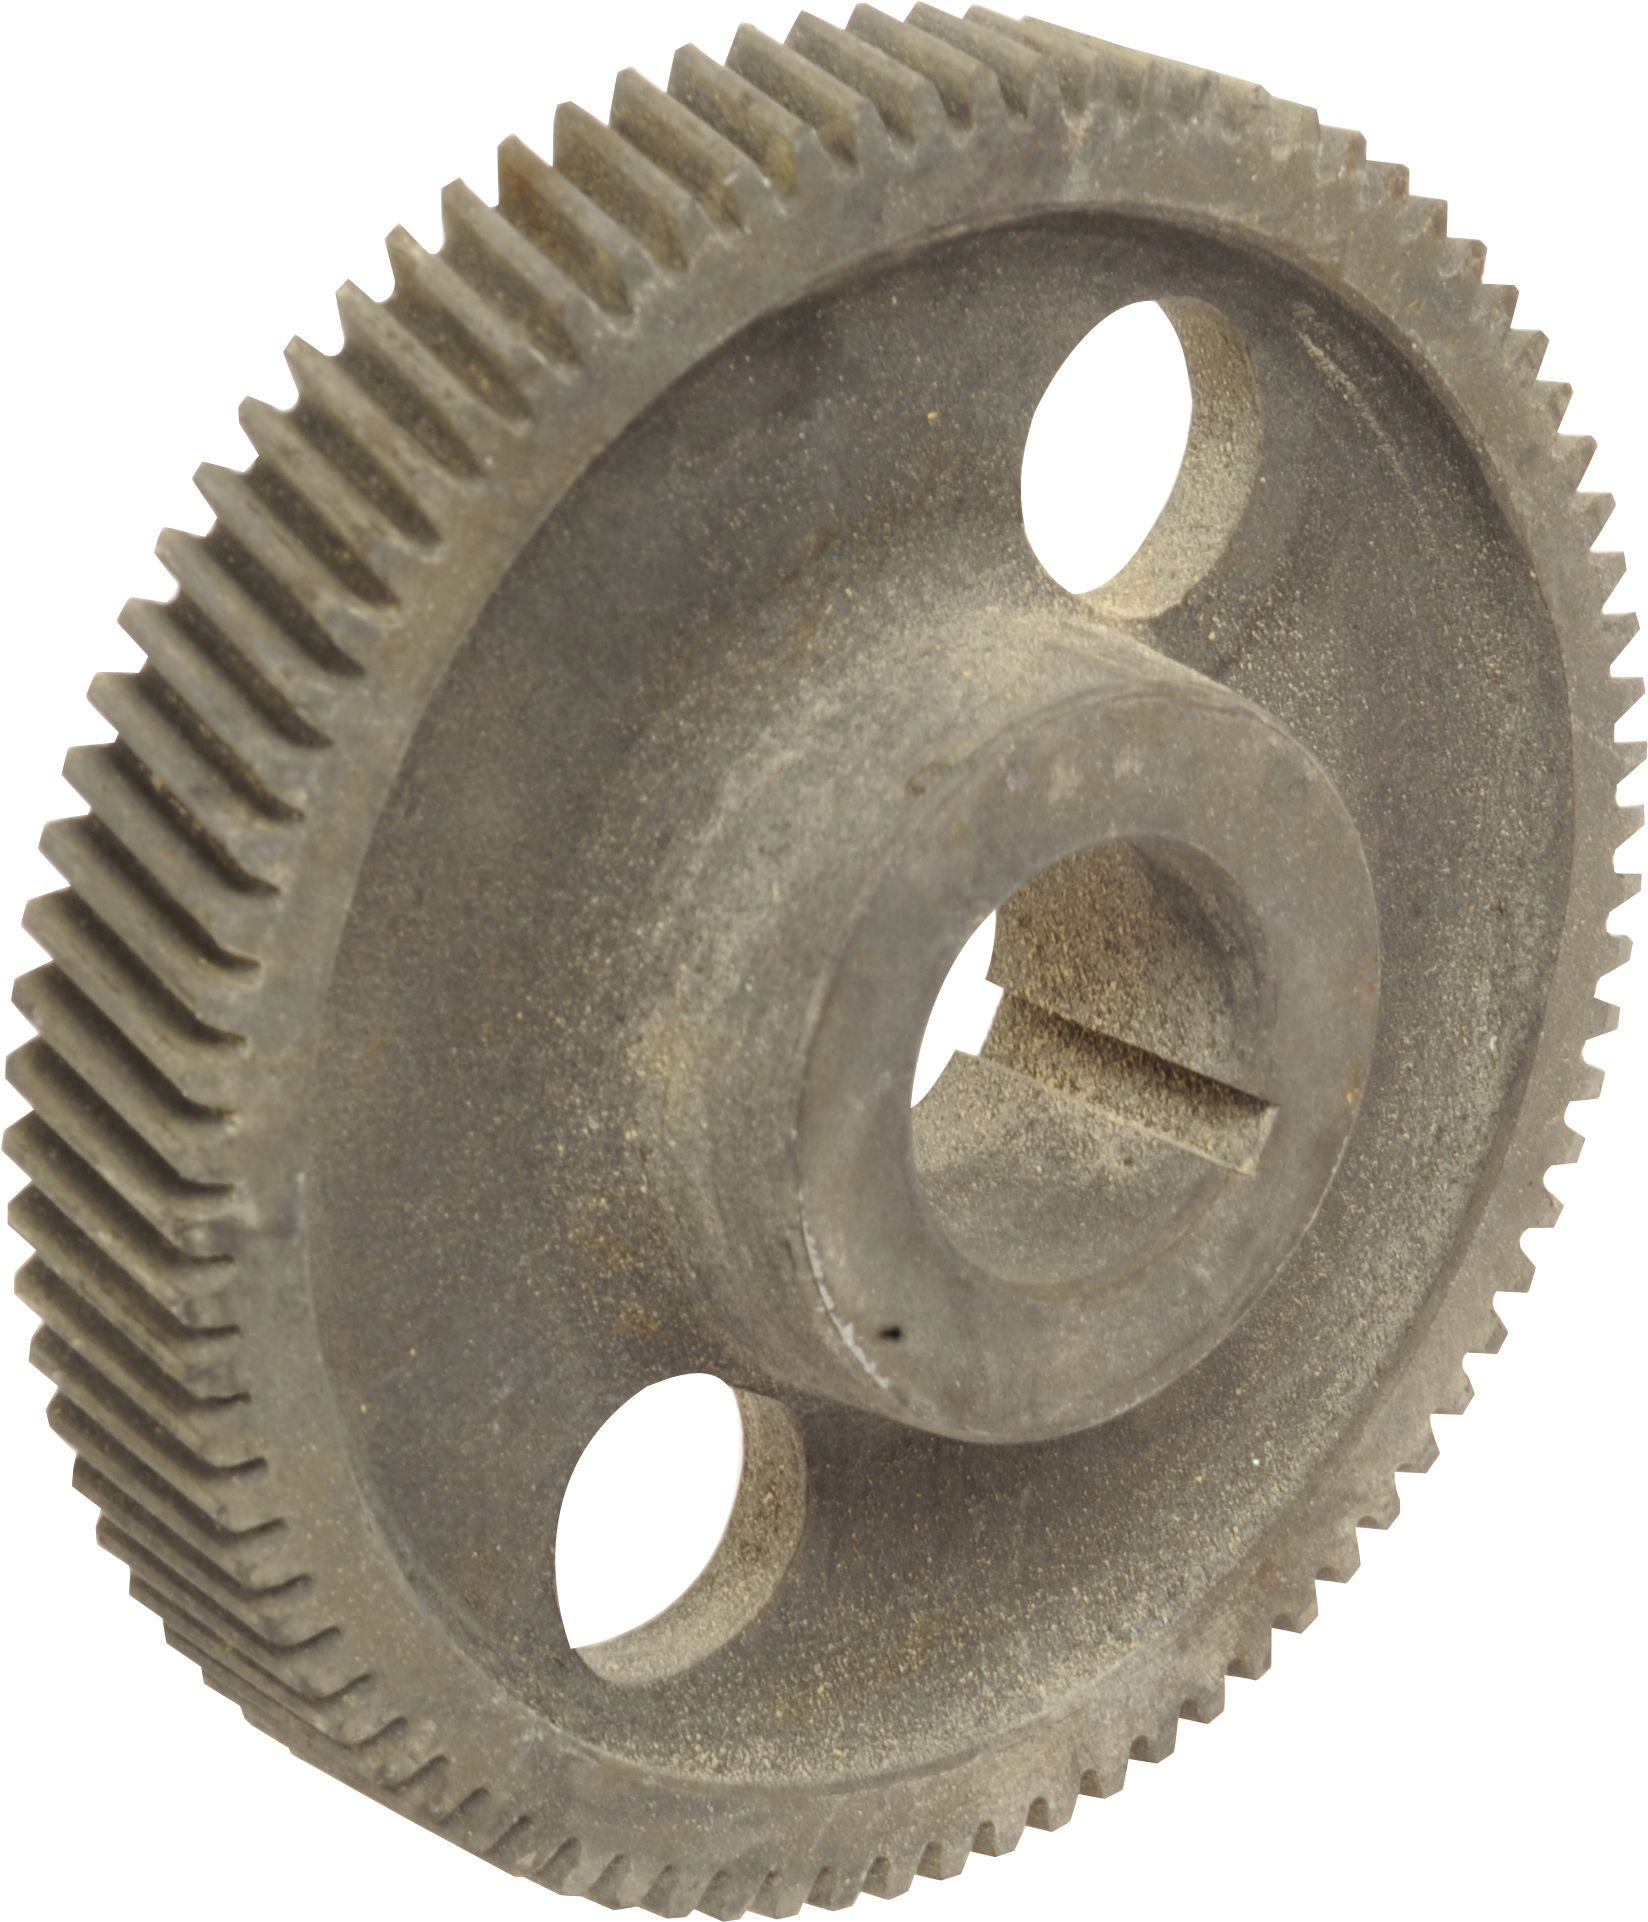 LONG TRACTOR TIMING GEAR 59076